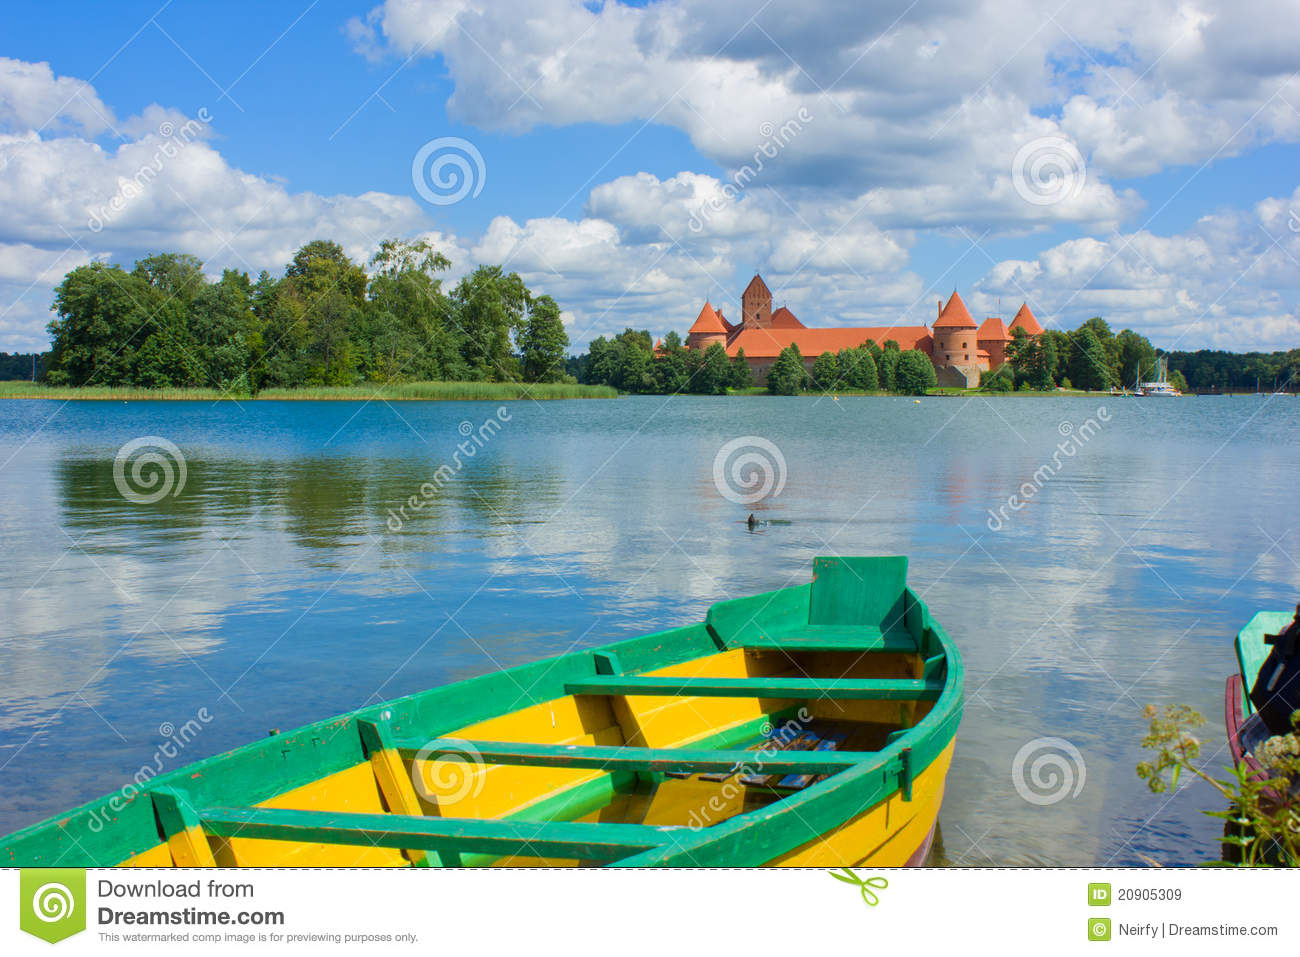 trakai black singles Karaism in lithuania i visited trakai a few they would've had almost nothing in common with the ashkenazi jews who settled in lithuania after the black.